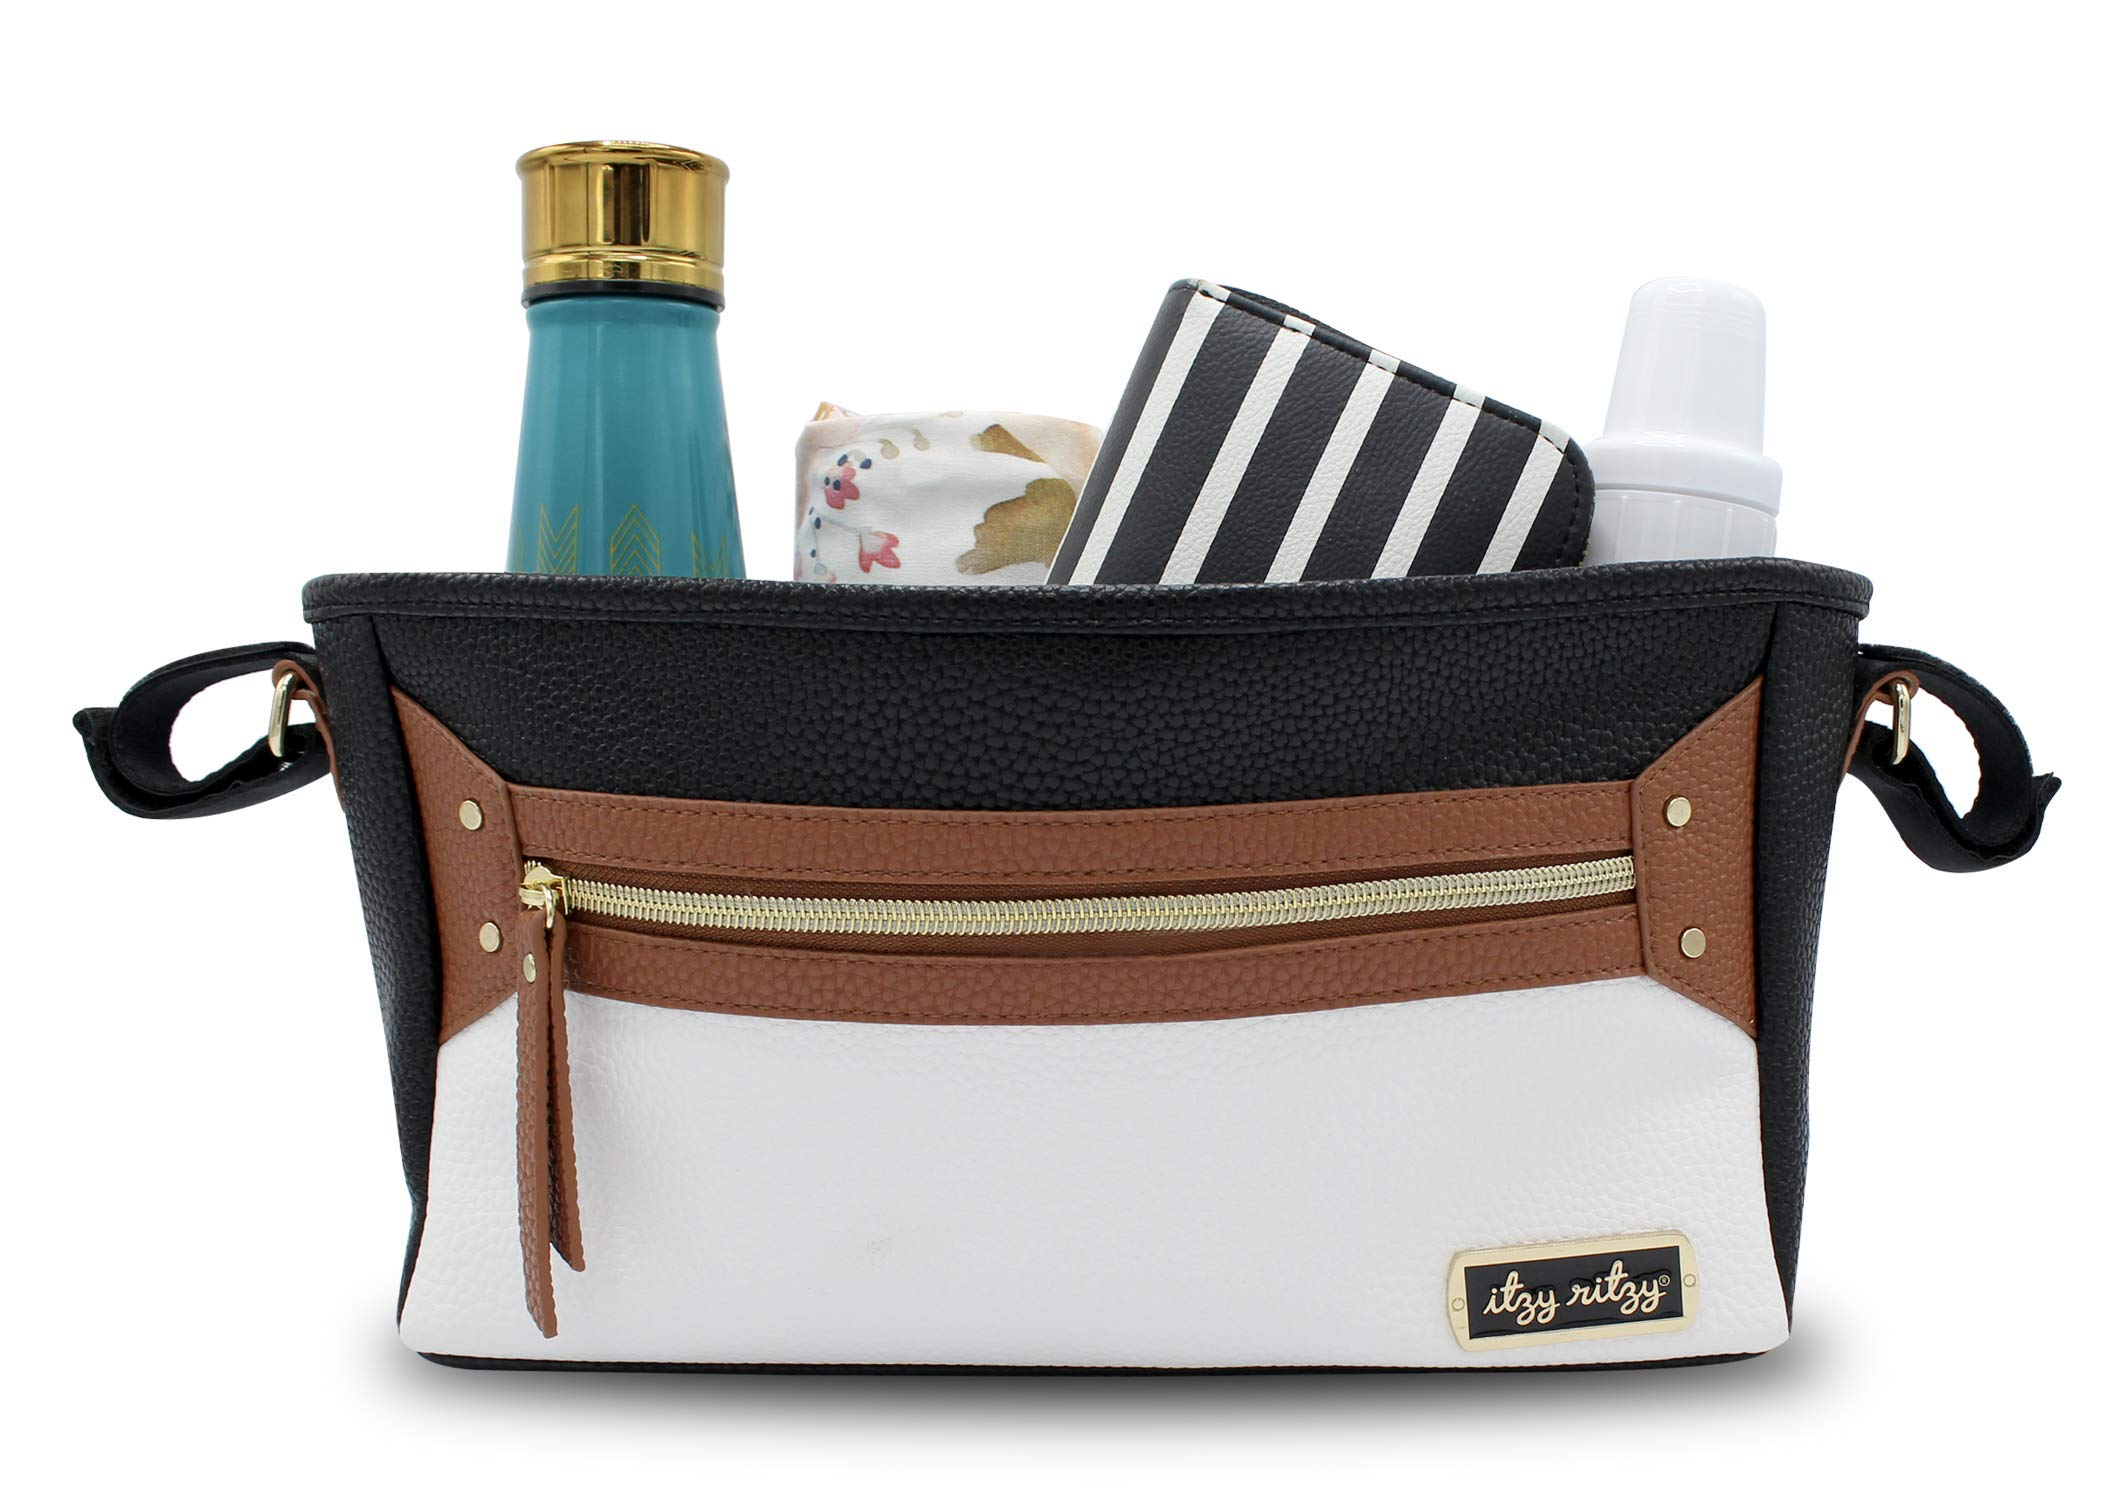 Itzy Ritzy Adjustable Stroller Caddy - Stroller Organizer Featuring Two Built-in Pockets, Front Zippered Pocket and Adjustable Straps to Fit Nearly Any Stroller, Coffee and Cream by Itzy Ritzy (Image #2)